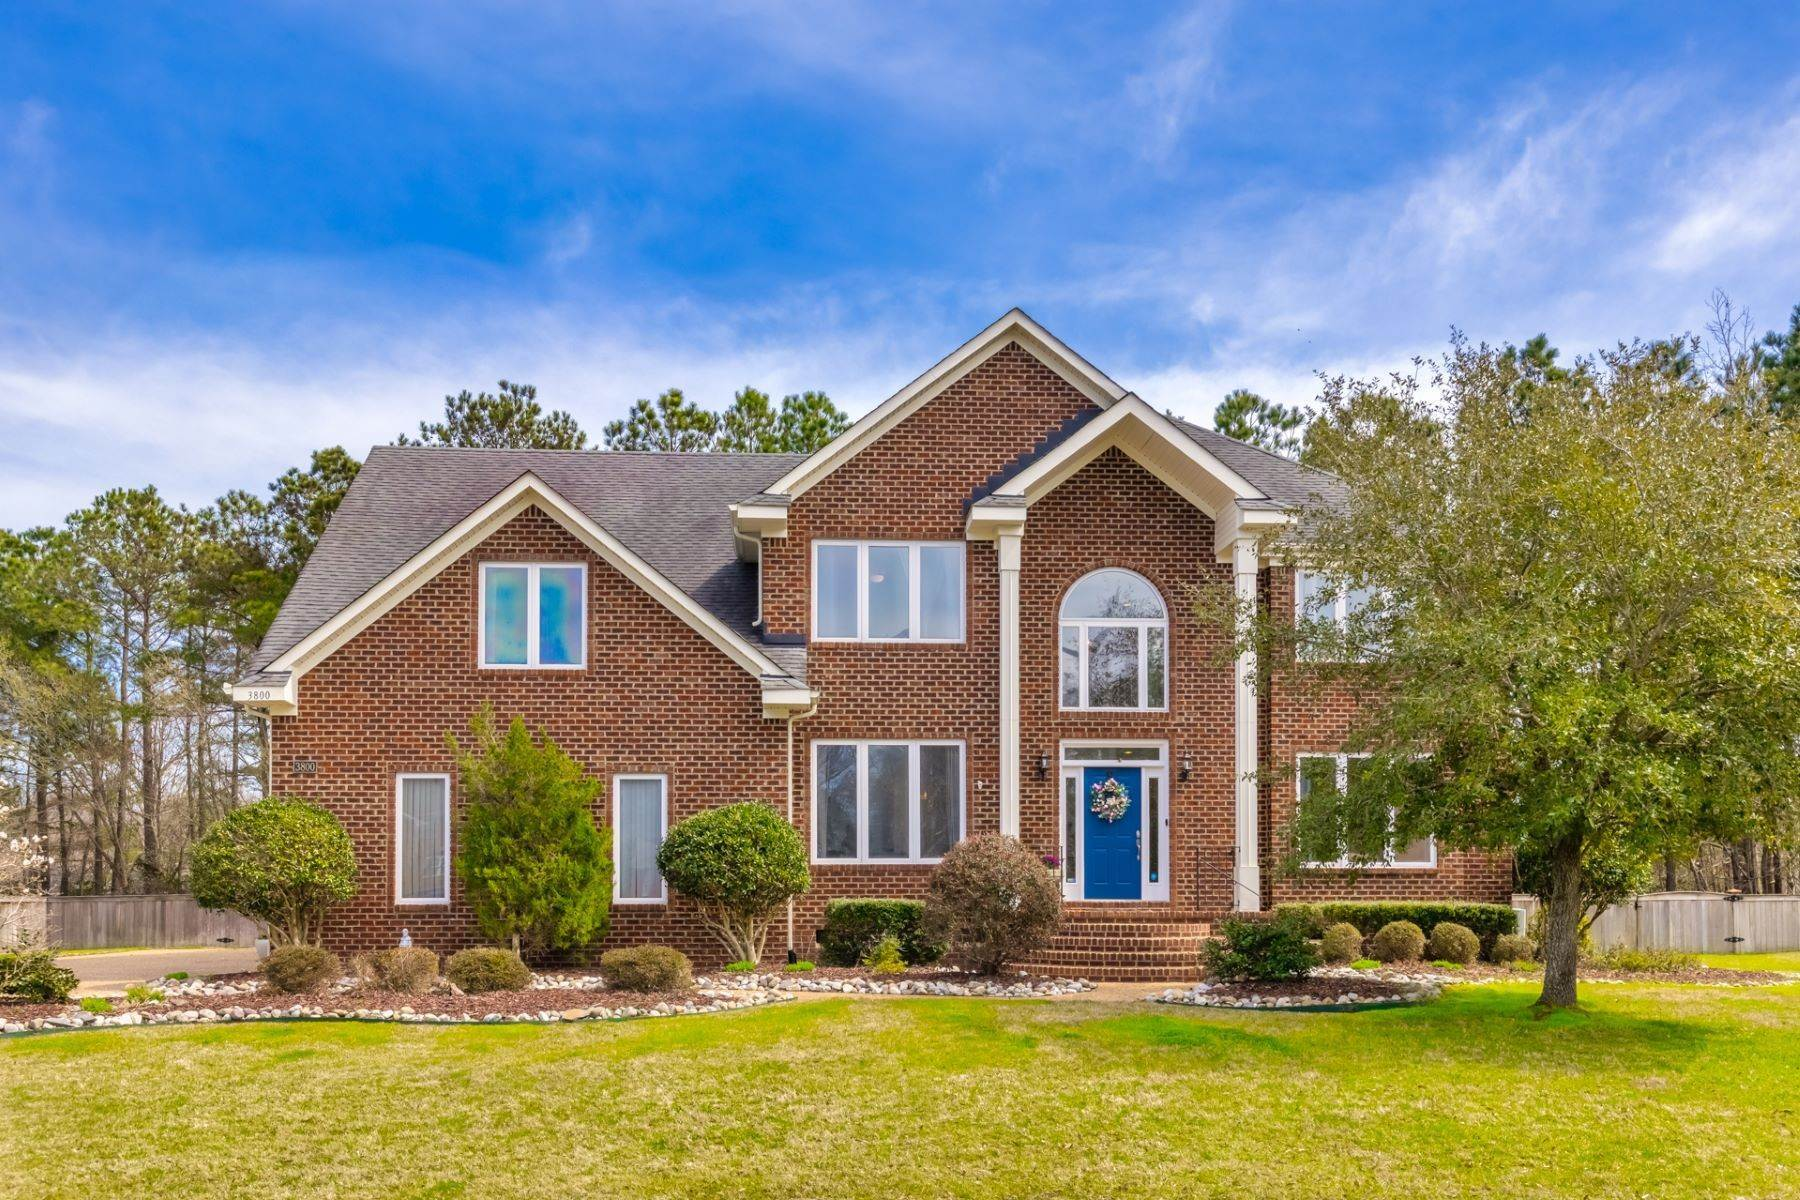 Single Family Homes for Sale at Morgans Walker 3800 Sterling Cove Court Virginia Beach, Virginia 23456 United States